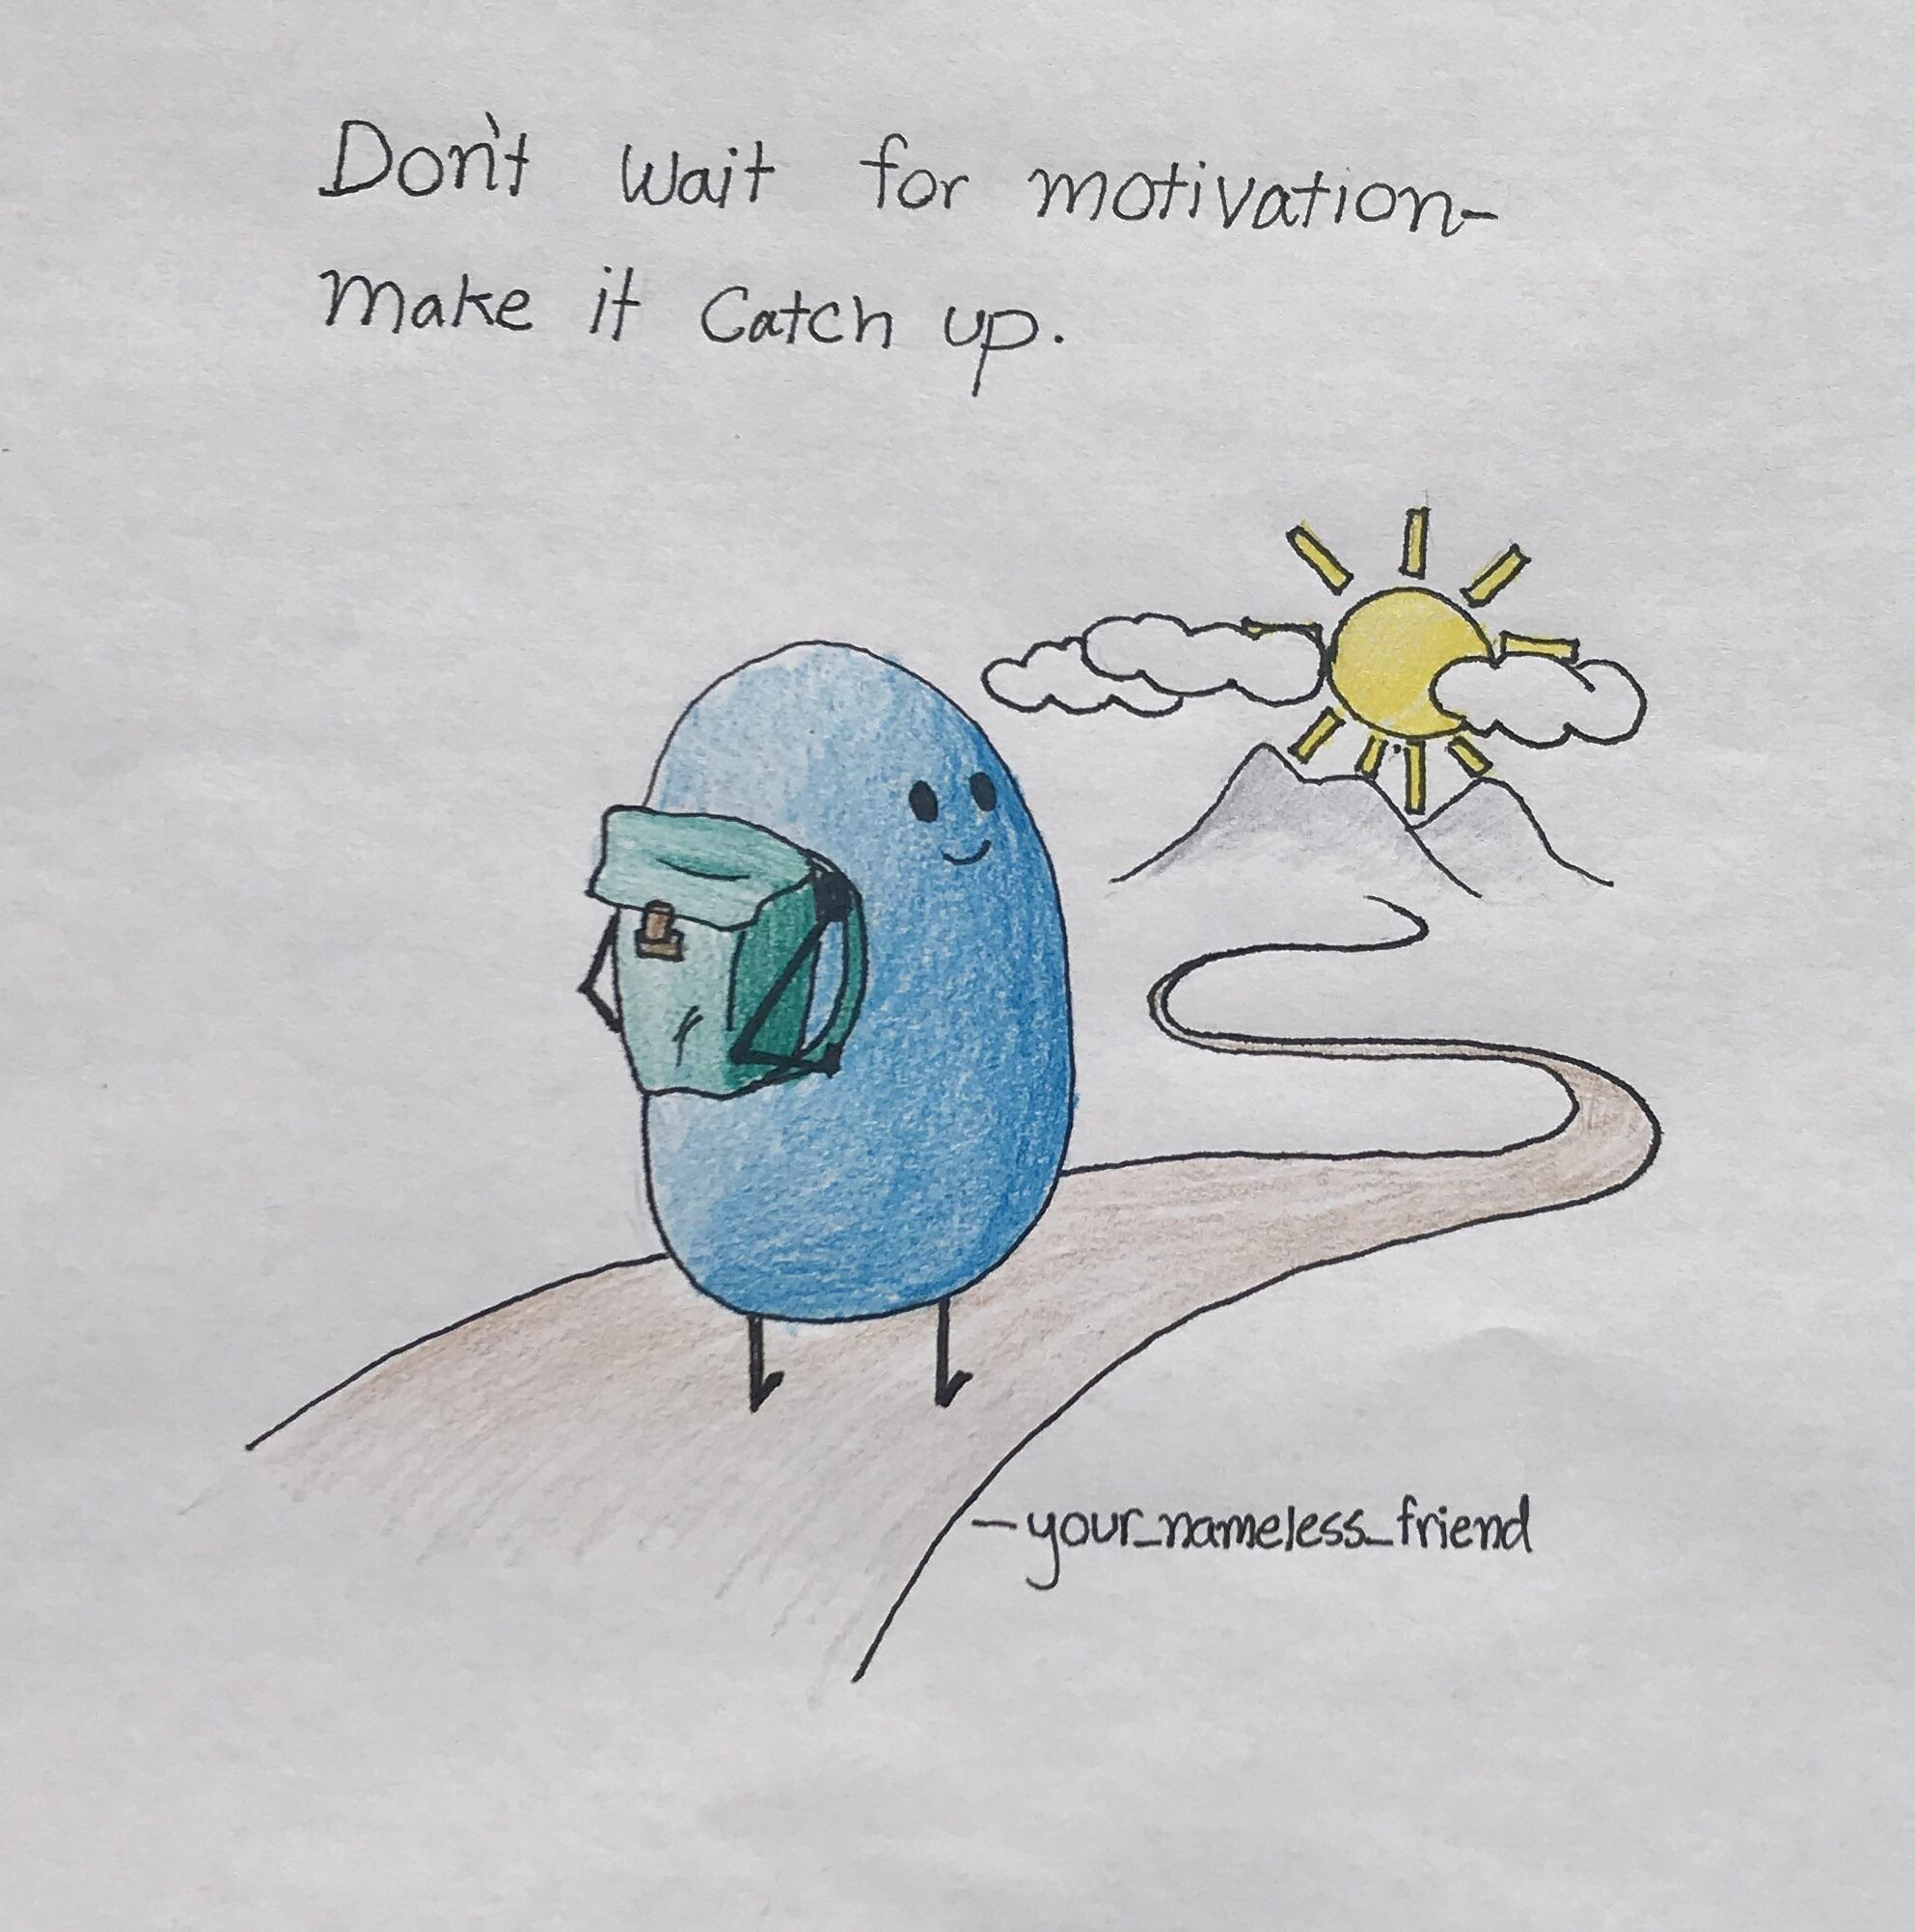 [Image] don't wait for motivation